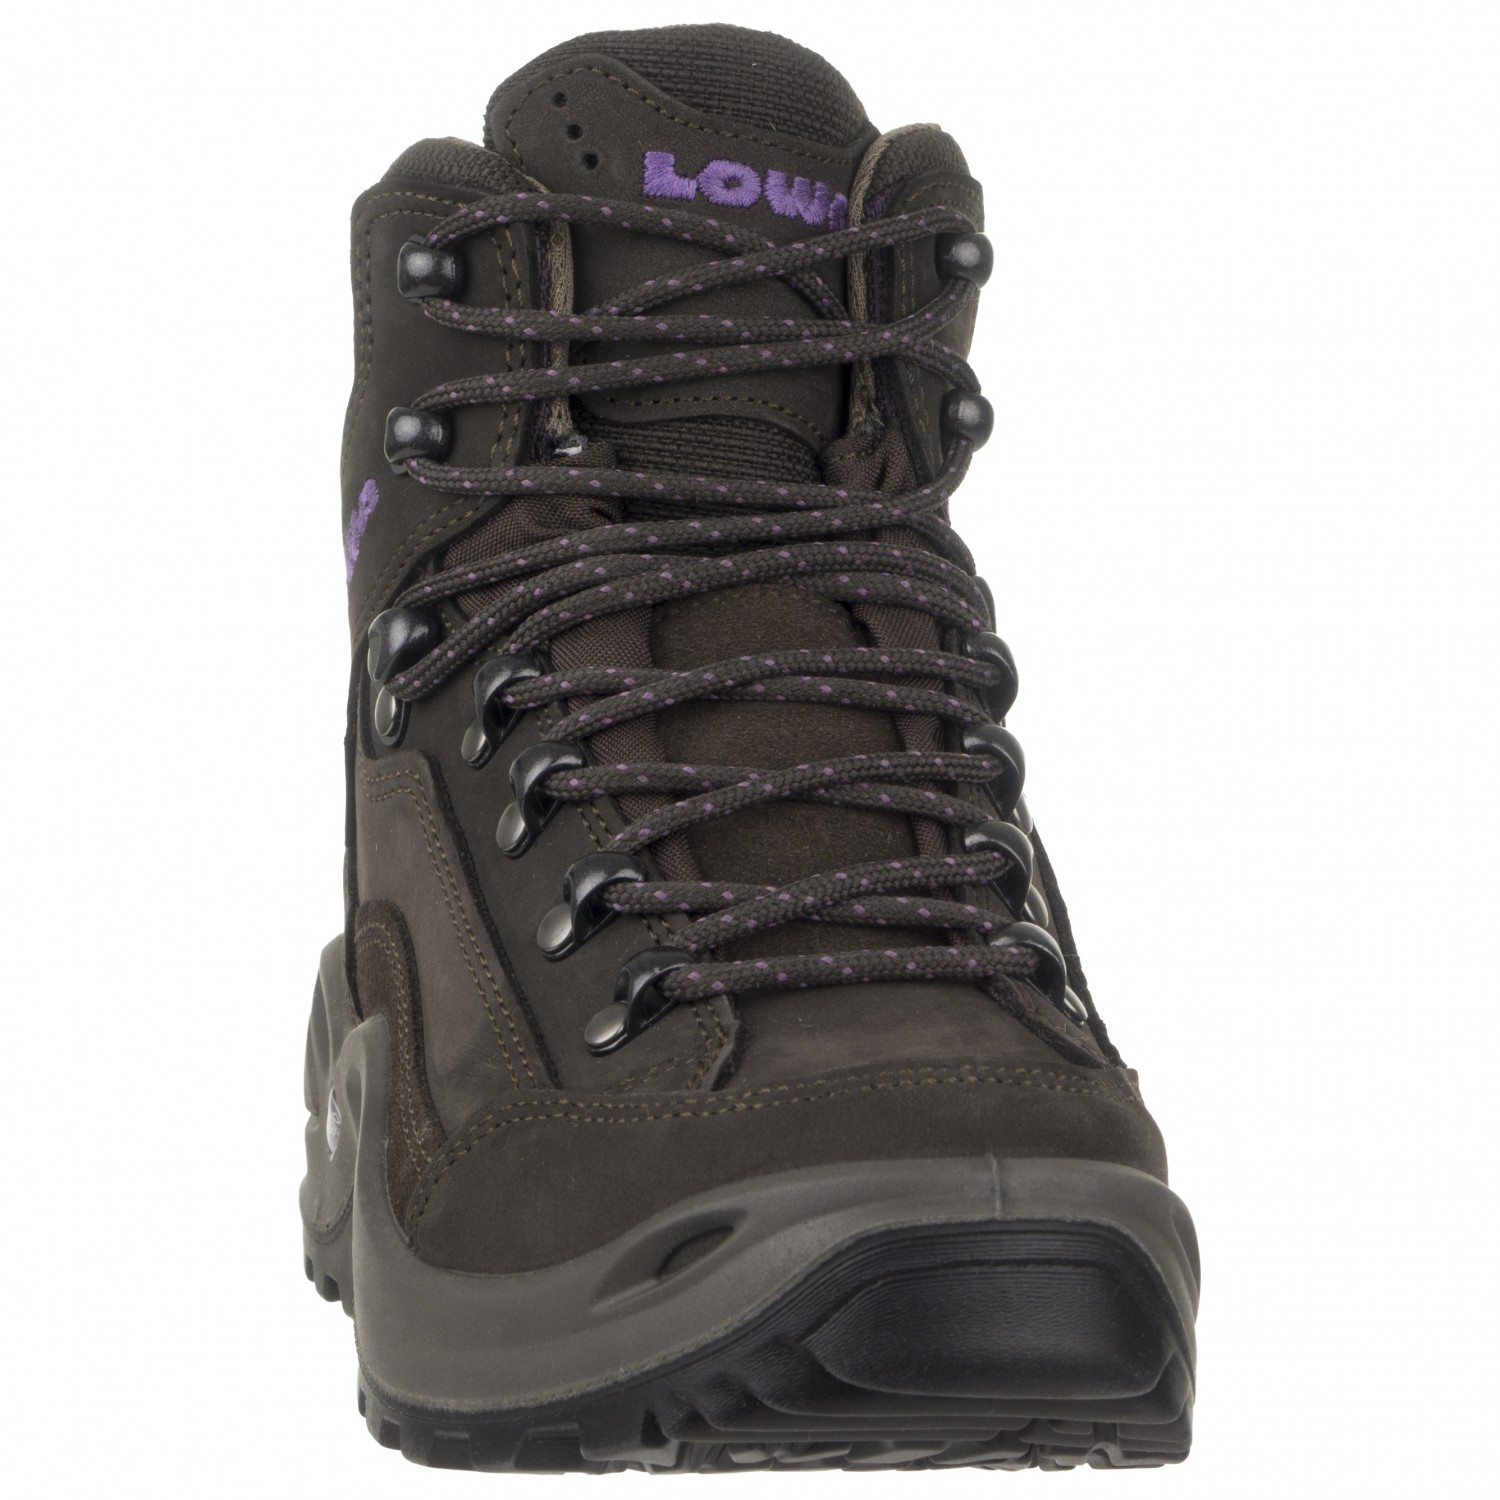 lowa renegade gtx mid walking boots women 39 s free eu. Black Bedroom Furniture Sets. Home Design Ideas